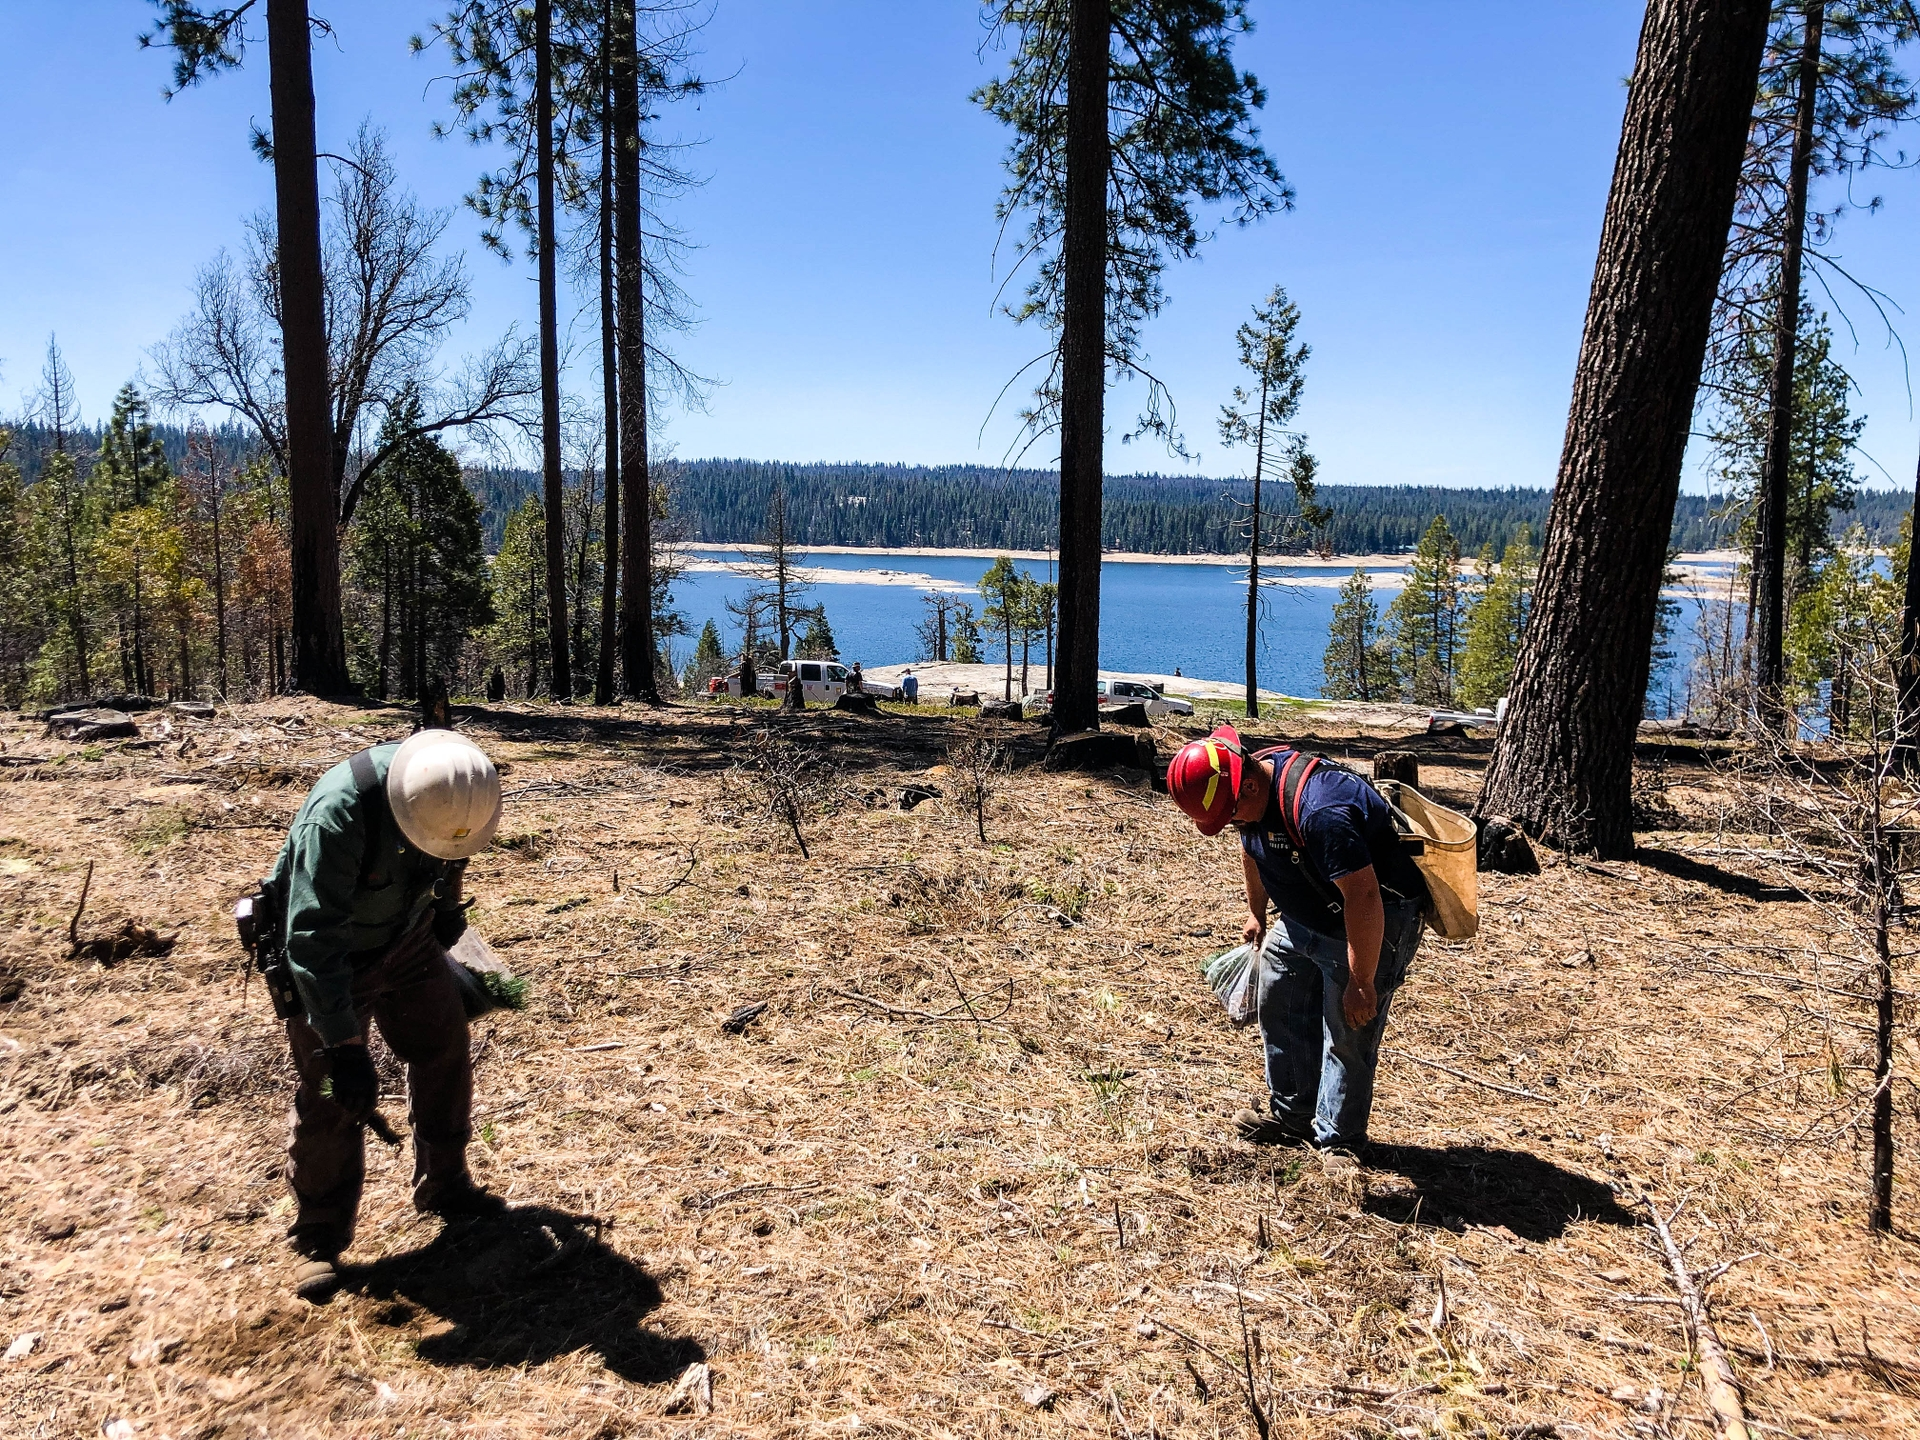 SCE forestry workers Lee Hooten and Nick Terrio plant Ponderosa pine seedlings north of Shaver Lake in a bark beetle-impacted stand